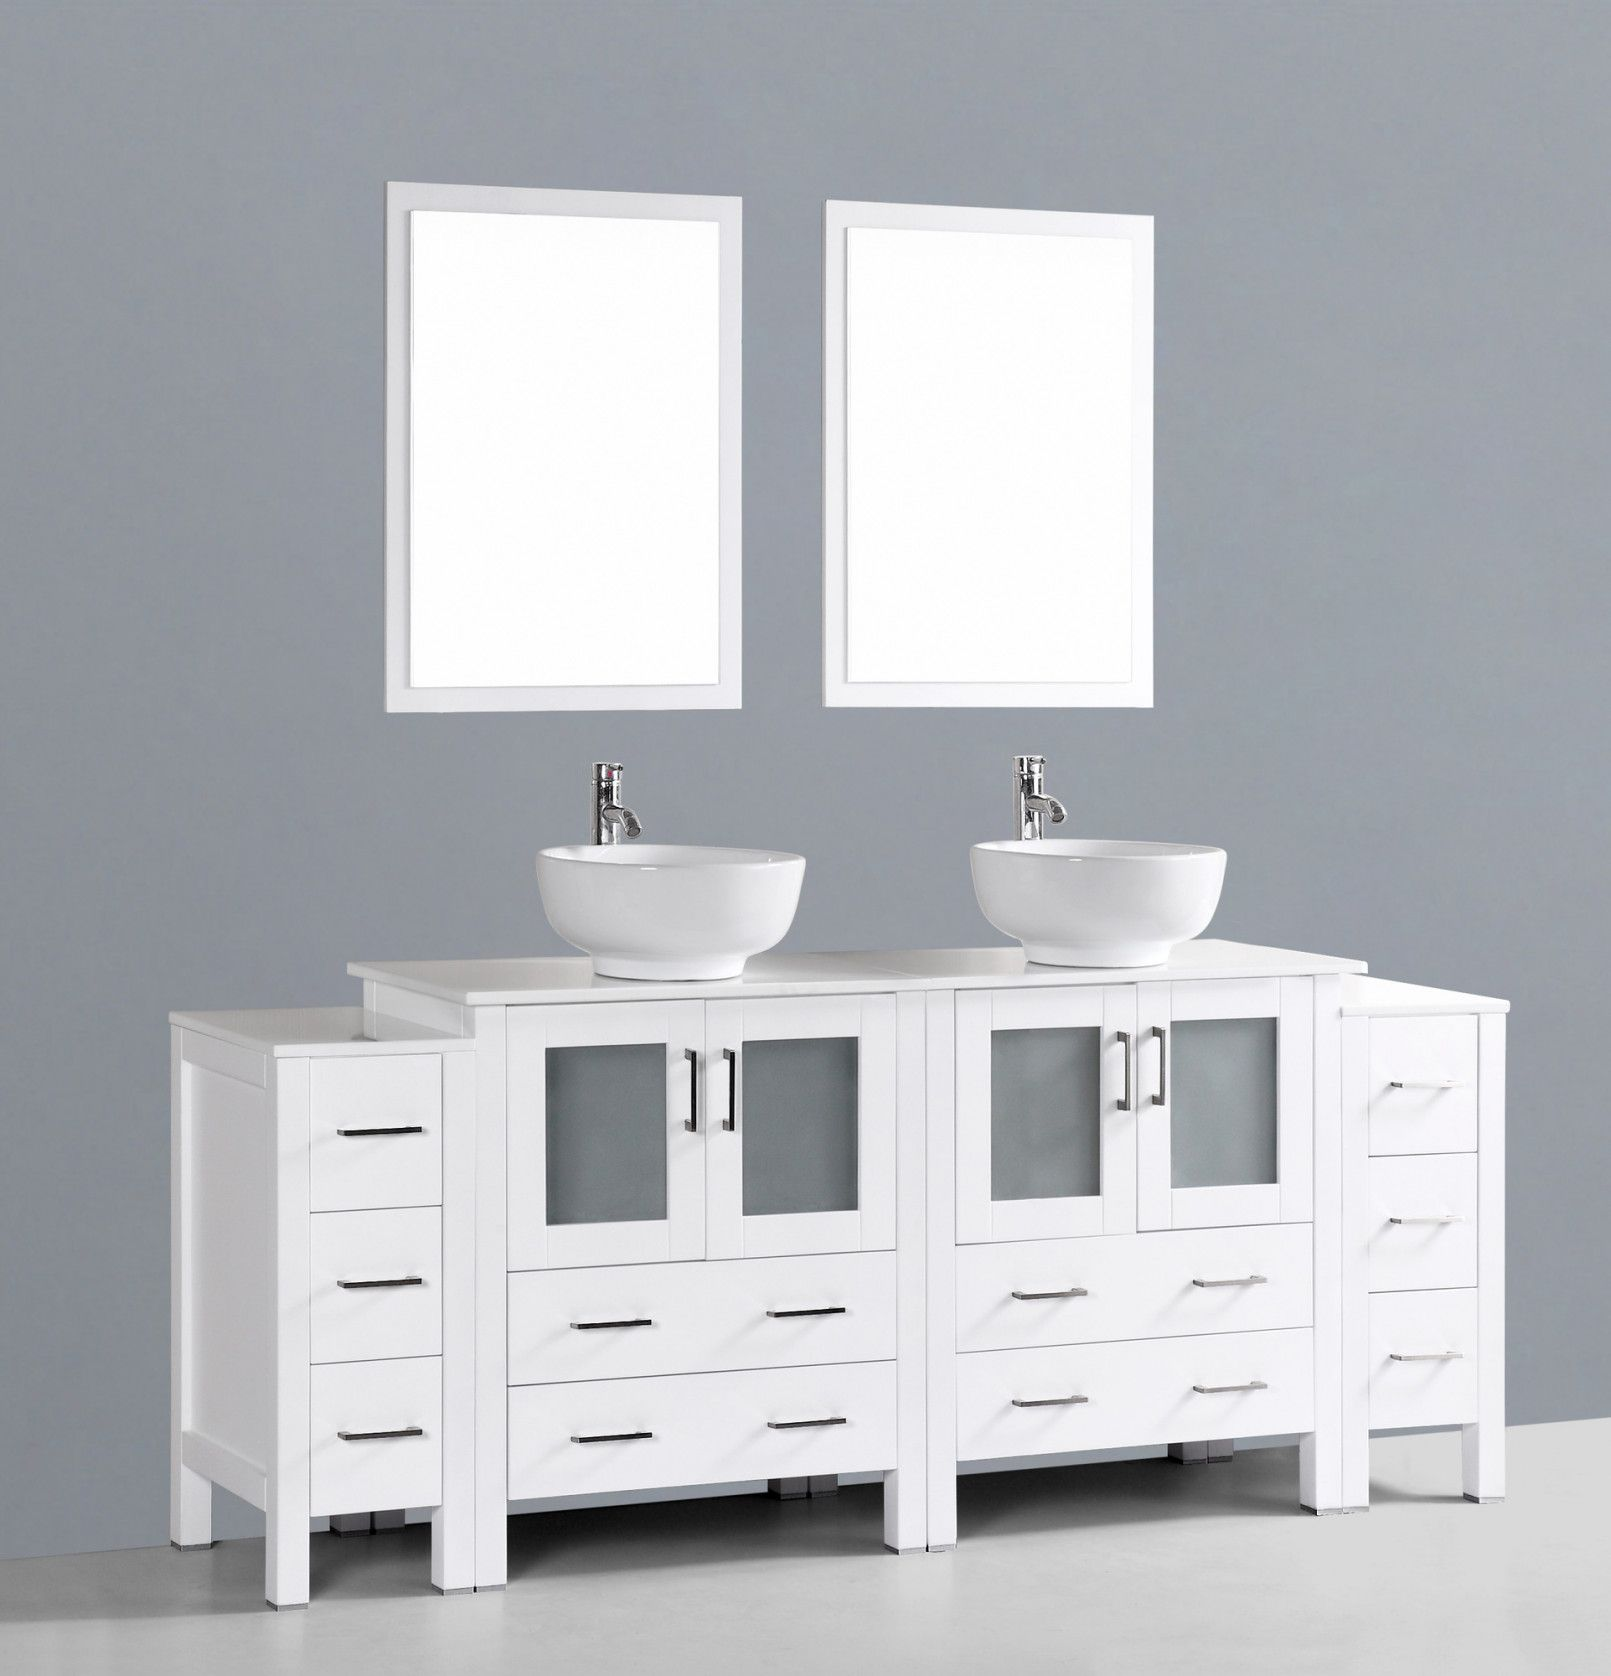 20 84 Inch Bathroom Vanity Cabinets Apartment Kitchen Cabinet Ideas Check More At Http